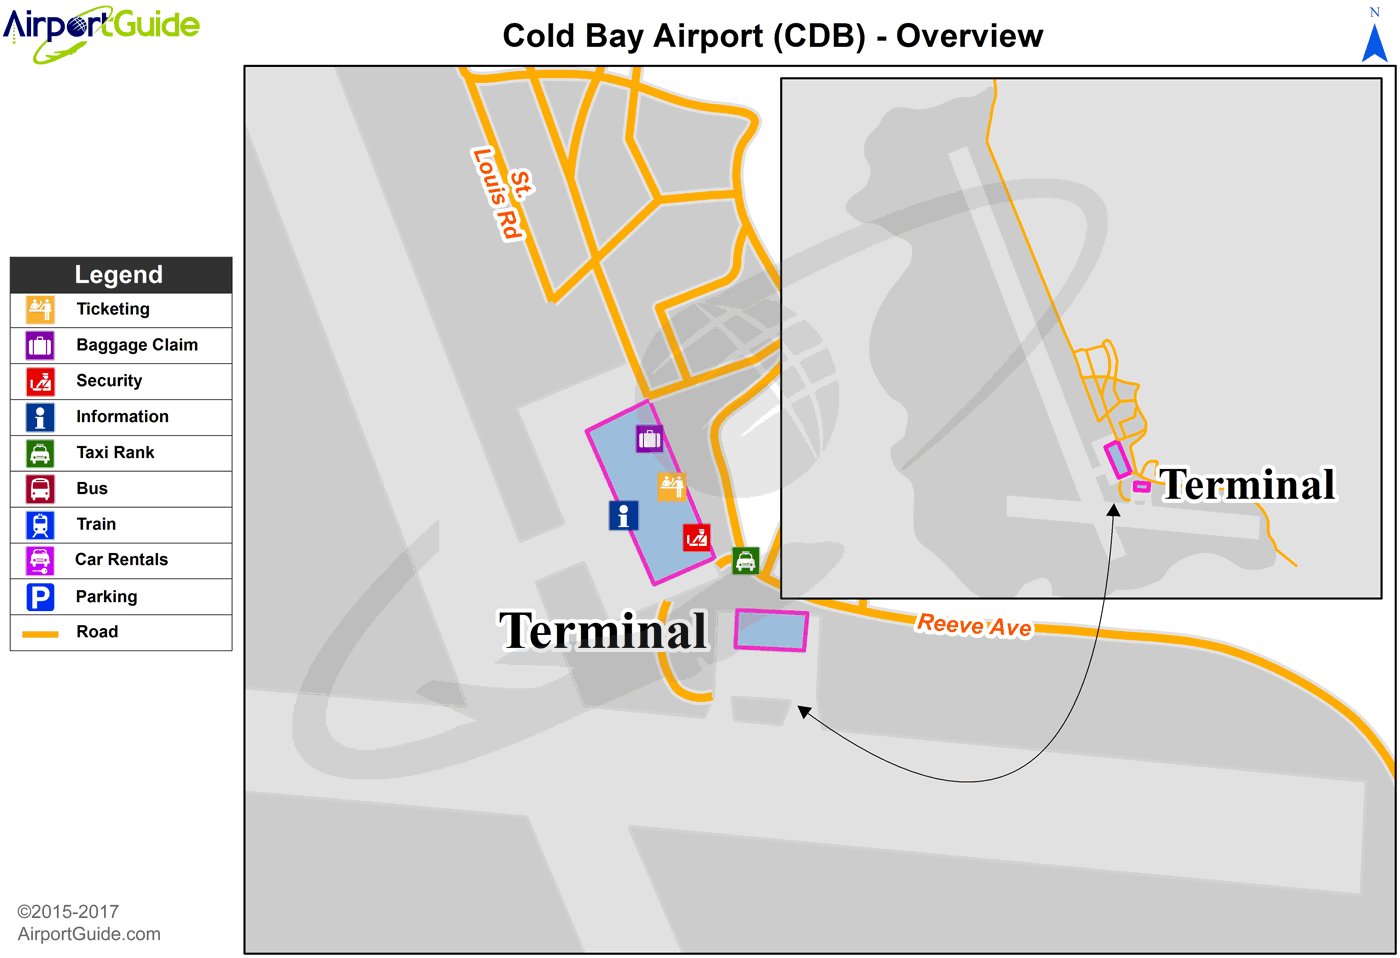 Cold Bay - Cold Bay (CDB) Airport Terminal Map - Overview